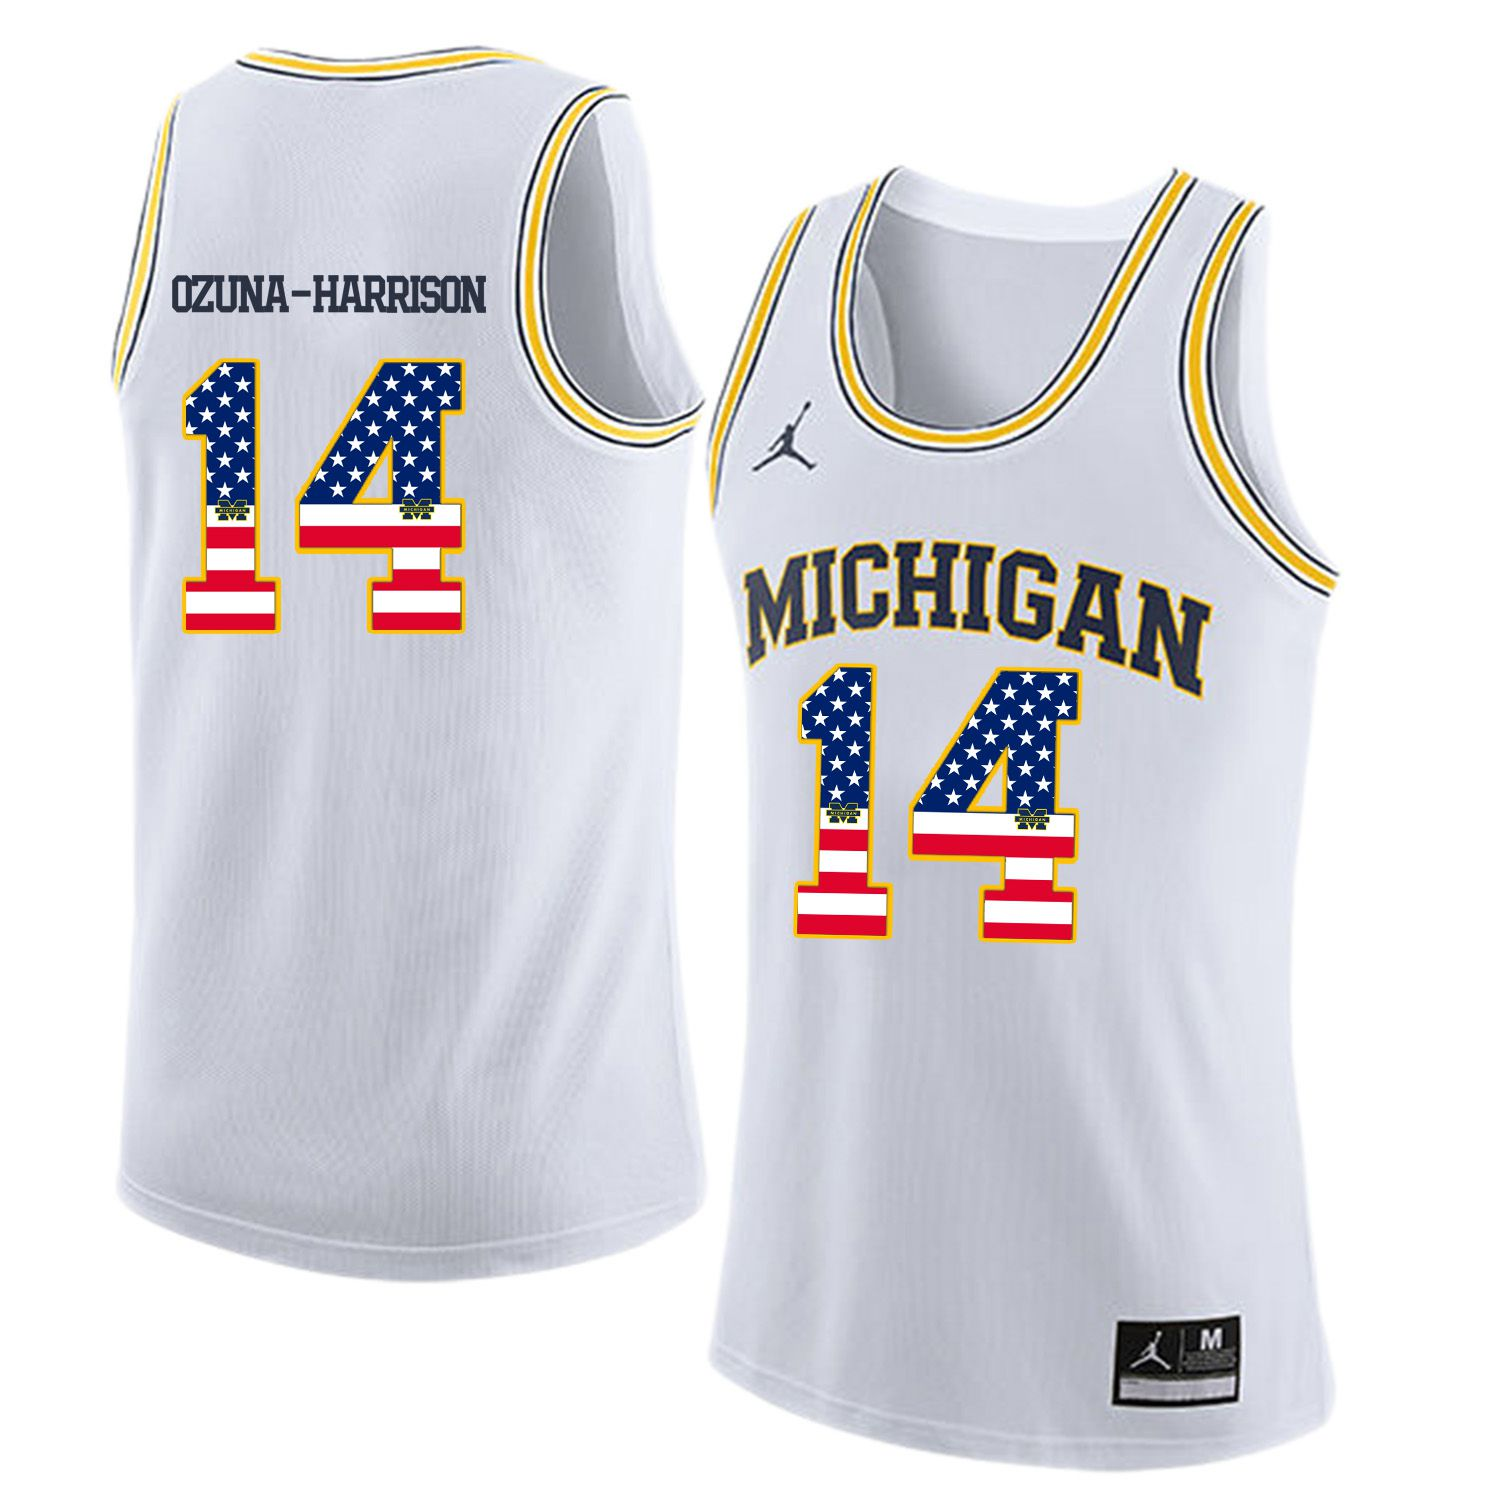 Men Jordan University of Michigan Basketball White 14 Ozuna-Harrison Flag Customized NCAA Jerseys